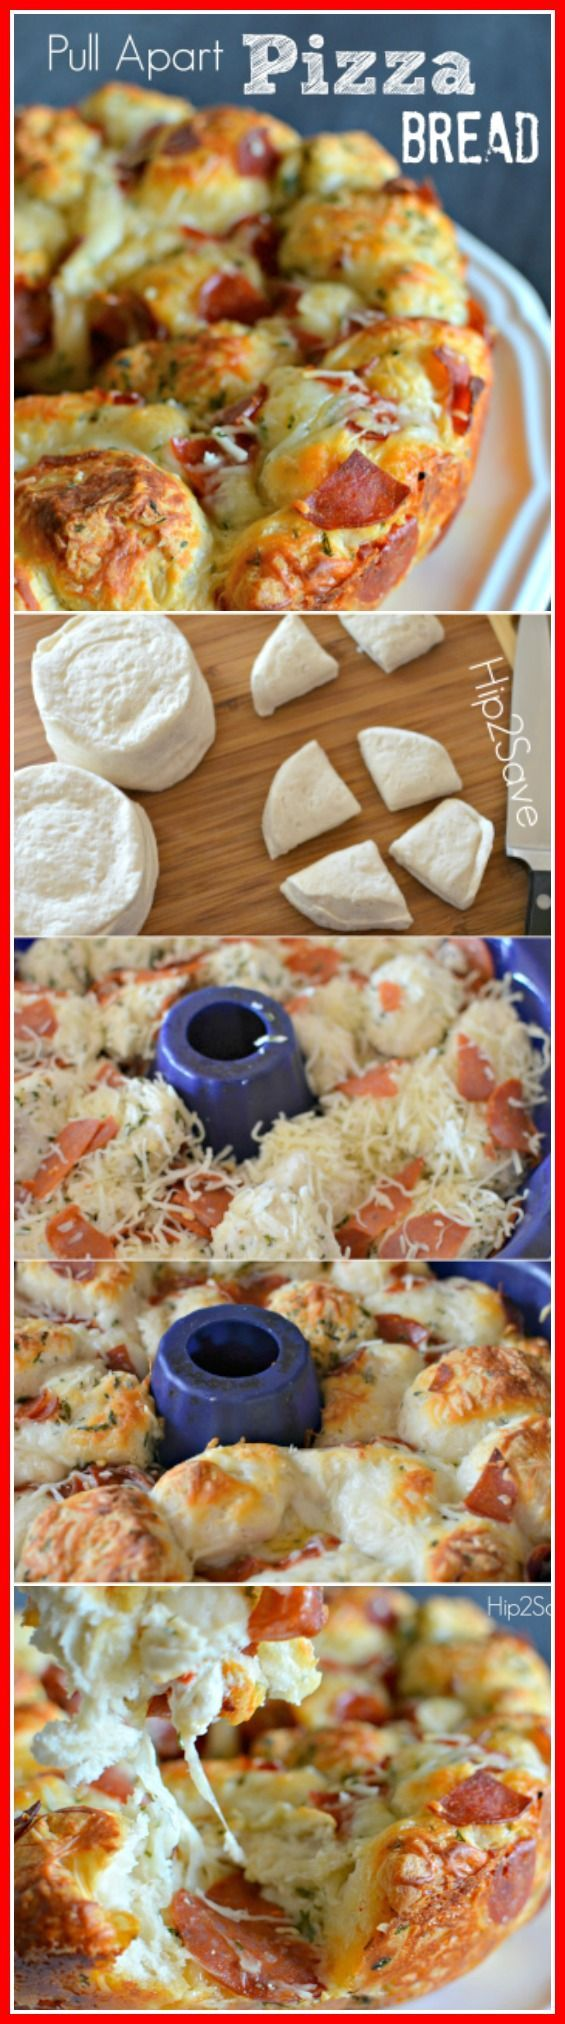 Pull apart pizza is absolutely delicious and fun to make. These pull apart pizza bread bites are great for an afternoon lunch or if you're planning to watch a movie with the family.